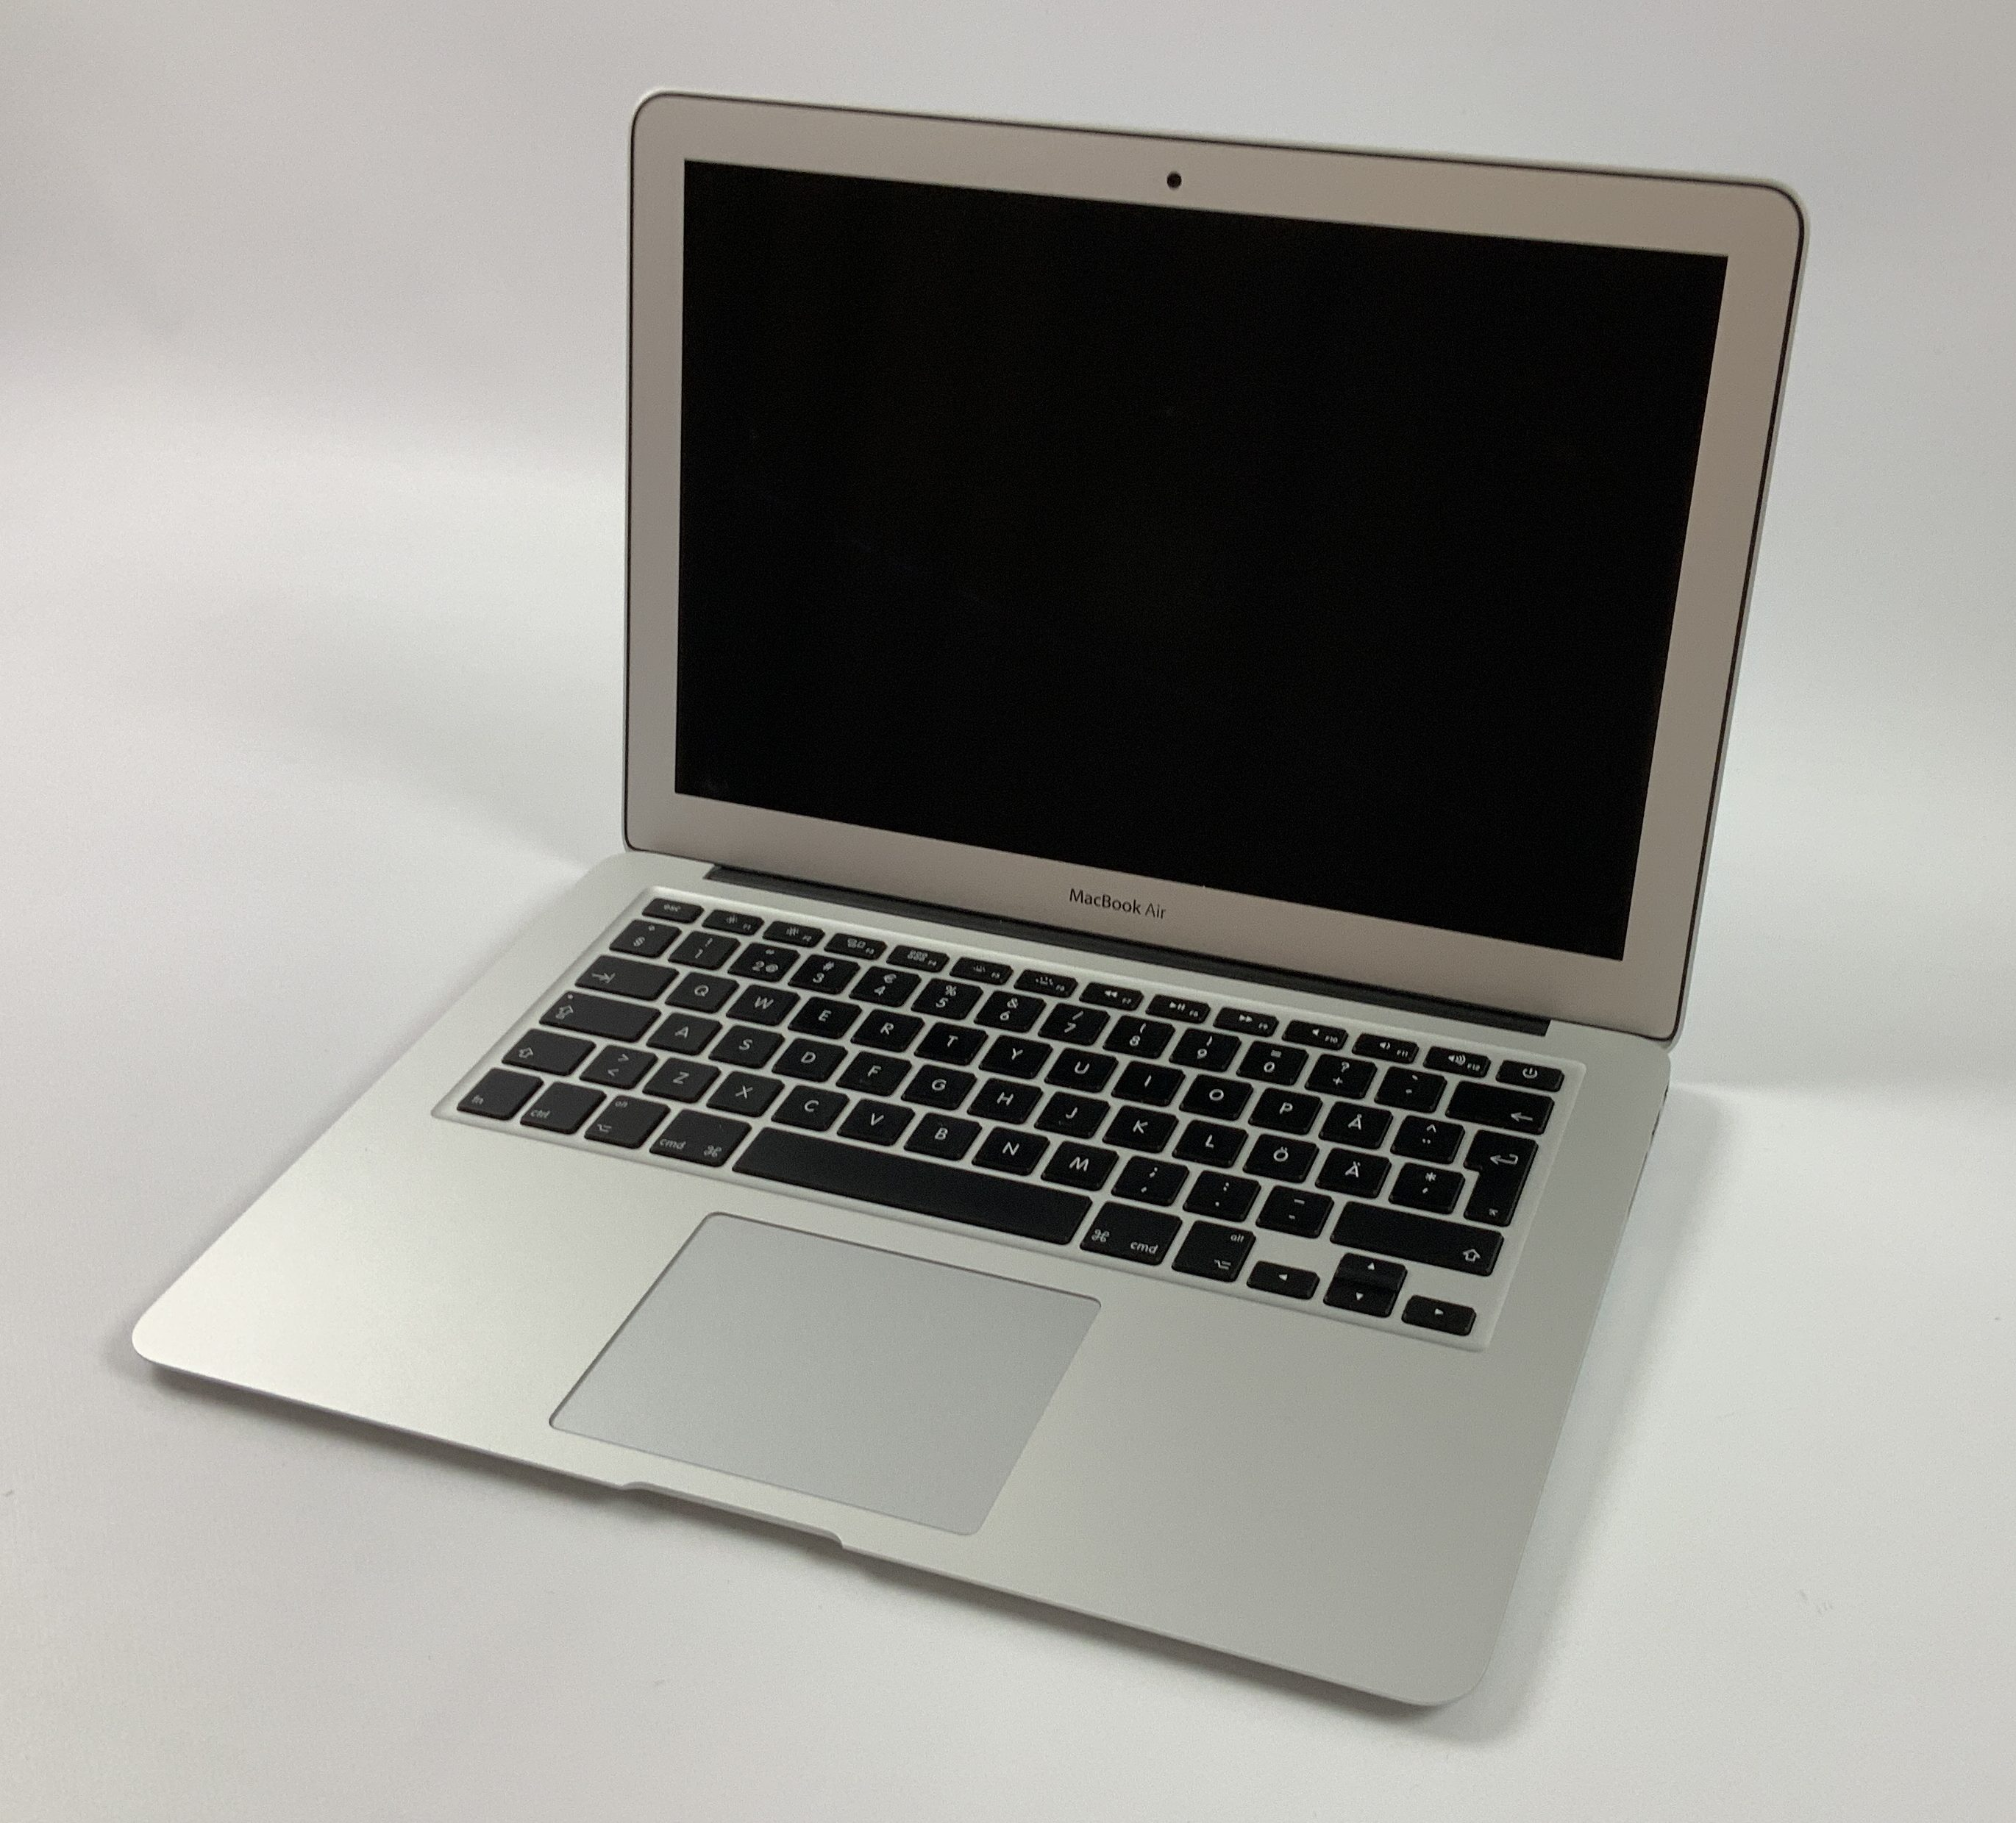 "MacBook Air 13"" Early 2015 (Intel Core i5 1.6 GHz 8 GB RAM 256 GB SSD), Intel Core i5 1.6 GHz, 8 GB RAM, 256 GB SSD, Kuva 1"